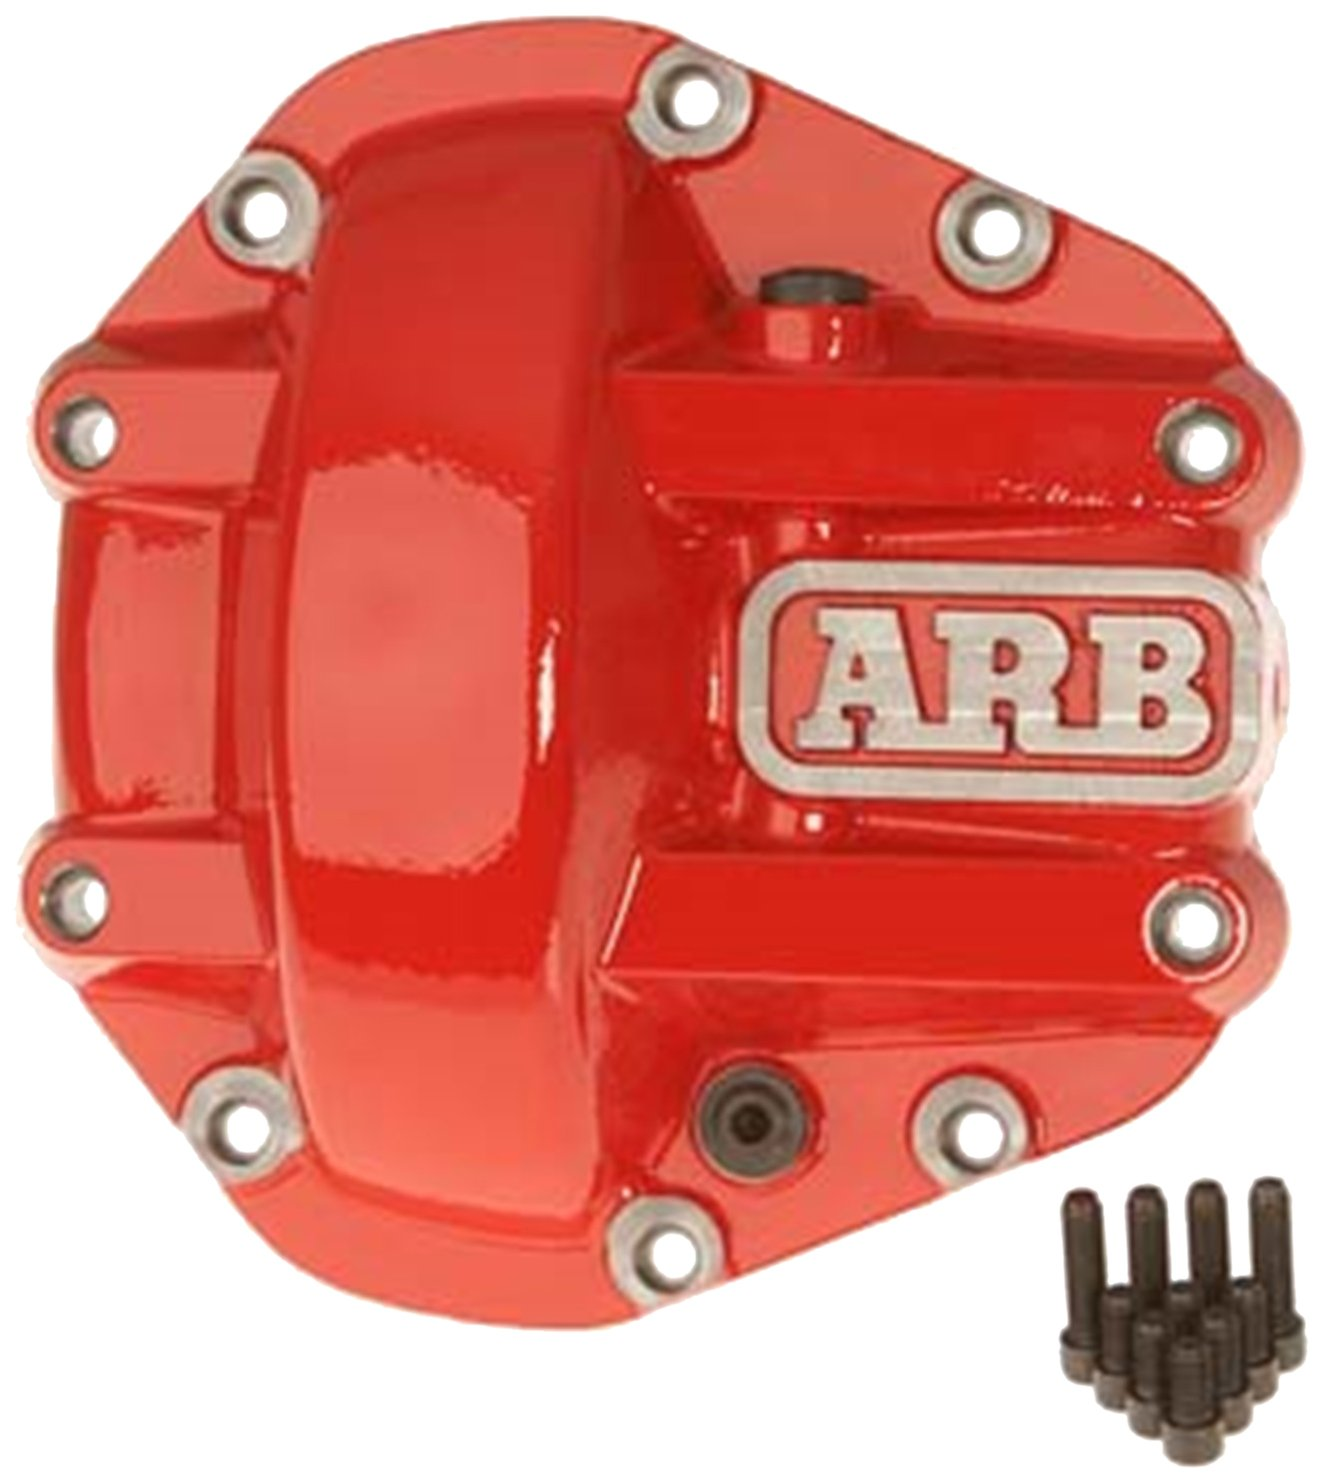 ARB Products 0750003 Competition Differential Cover for DANA 44 by ARB